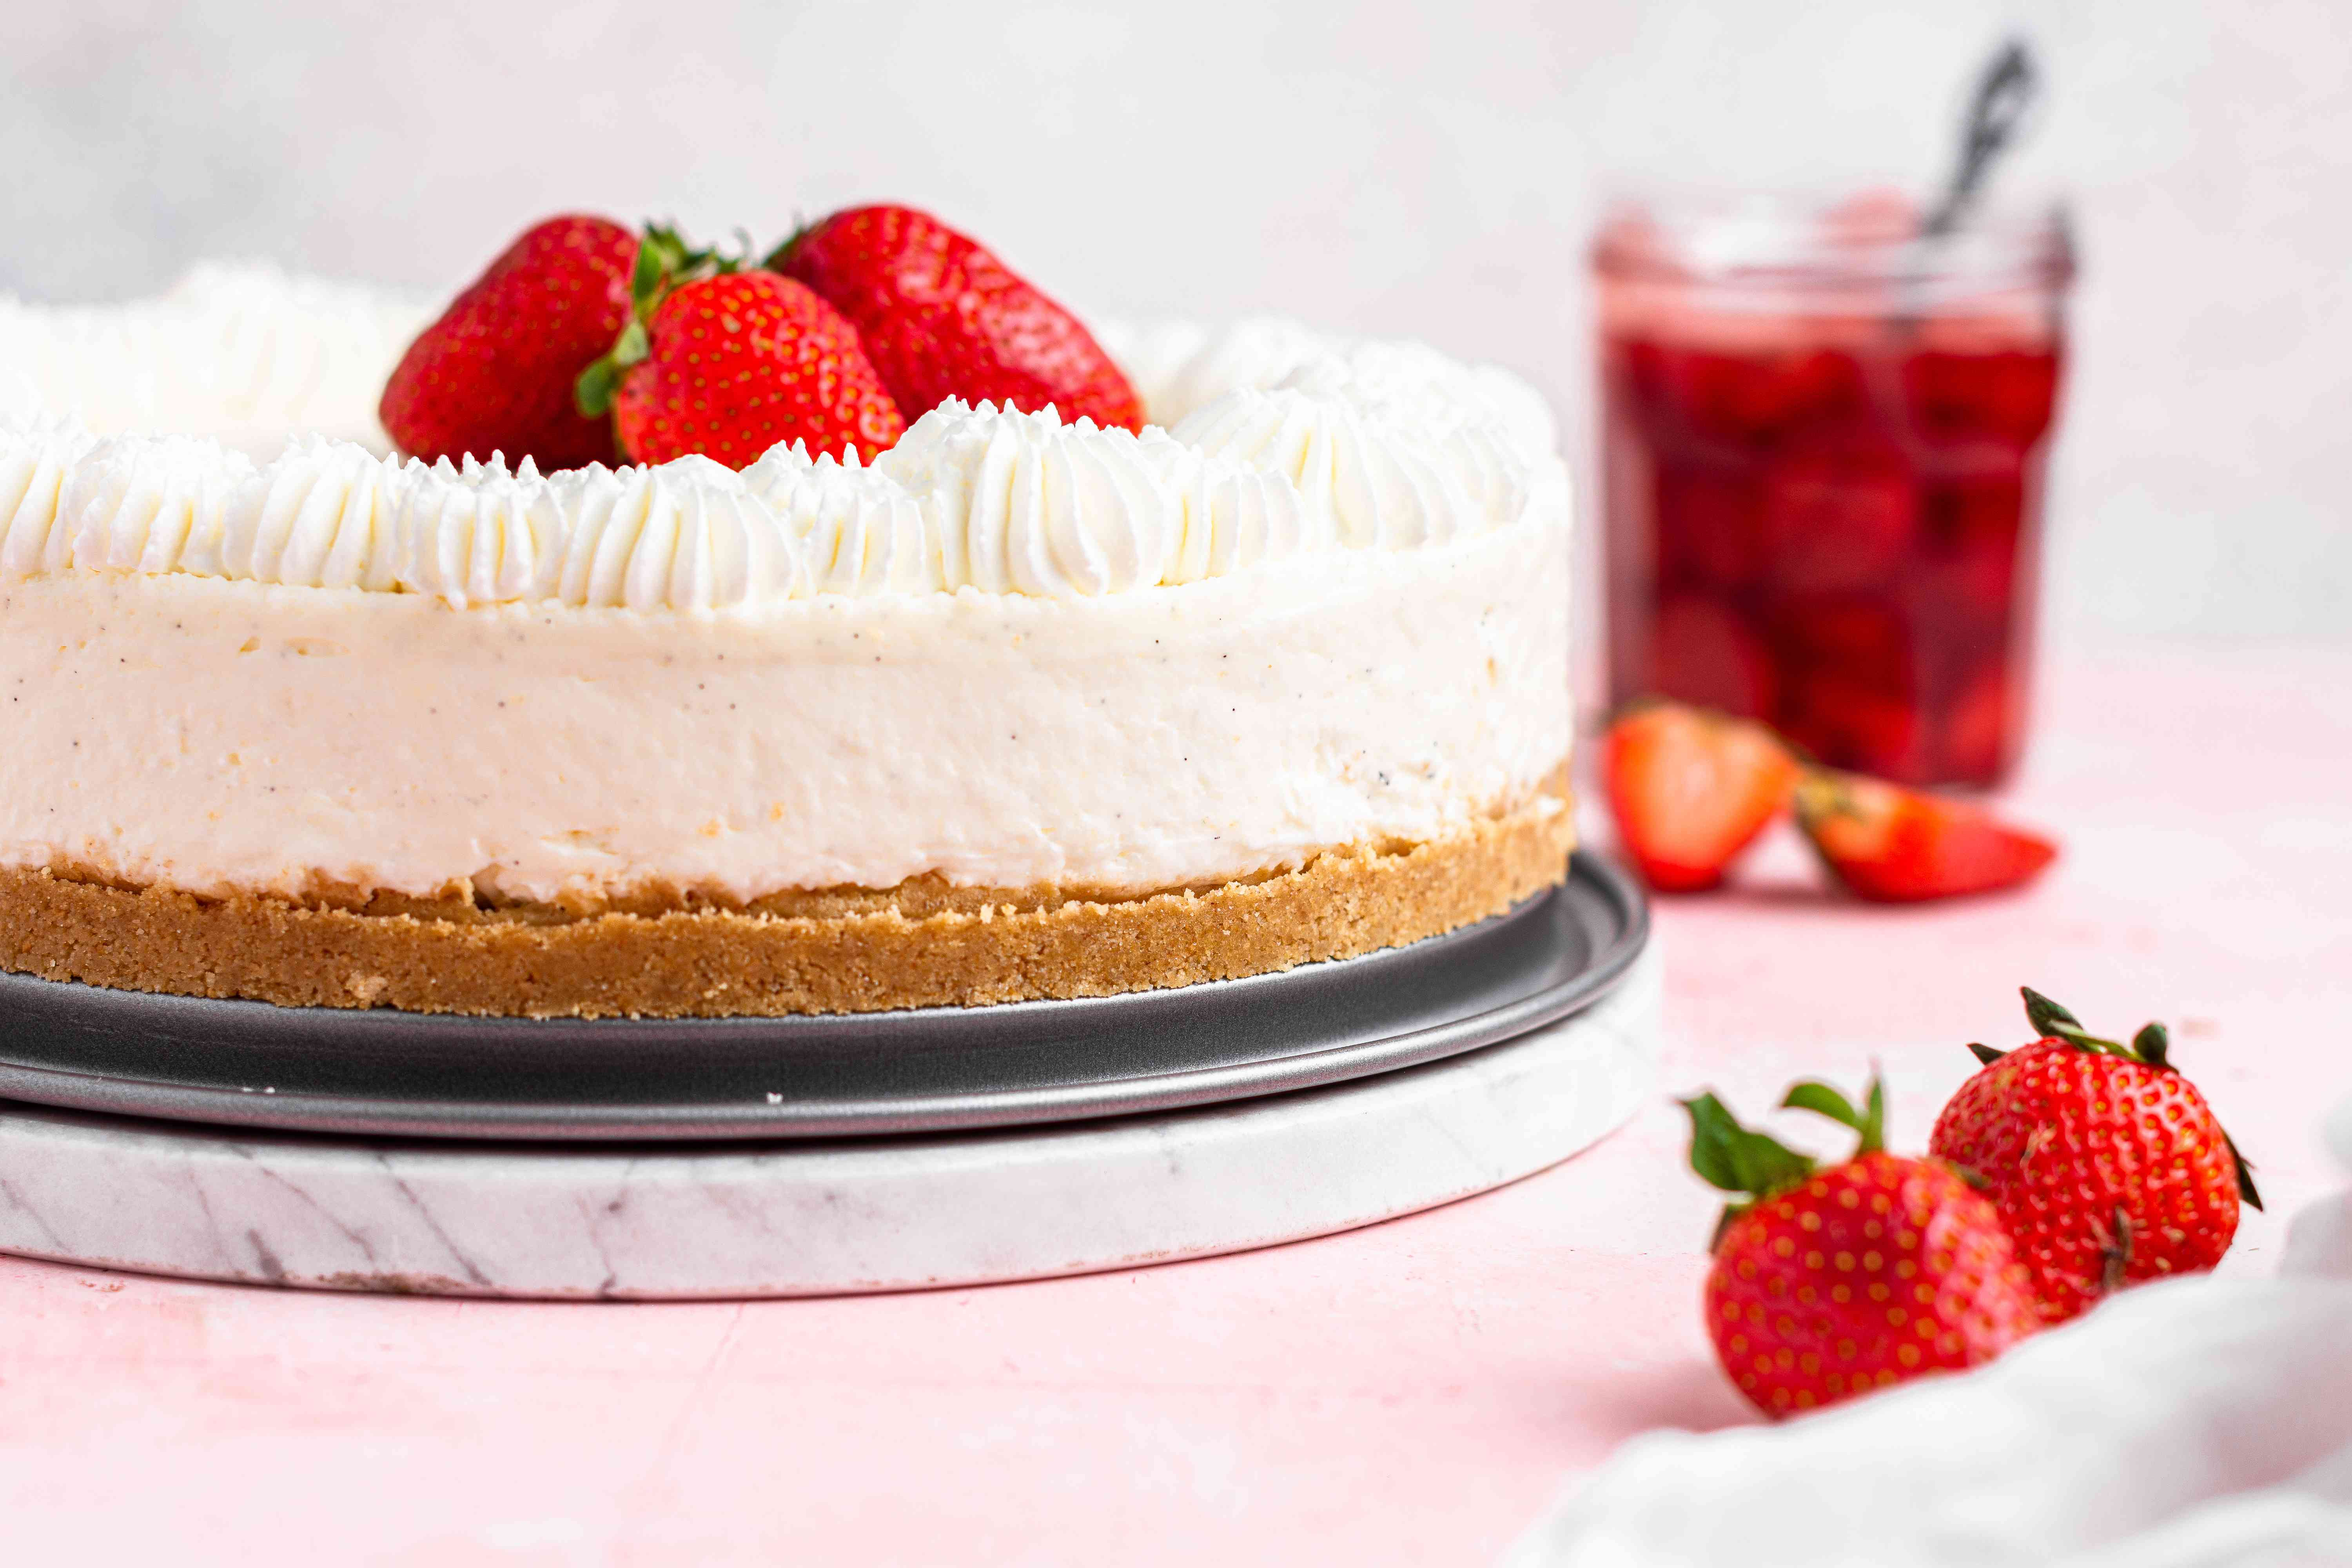 A whole easy no bake cheesecake topped with strawberries on a pink background.